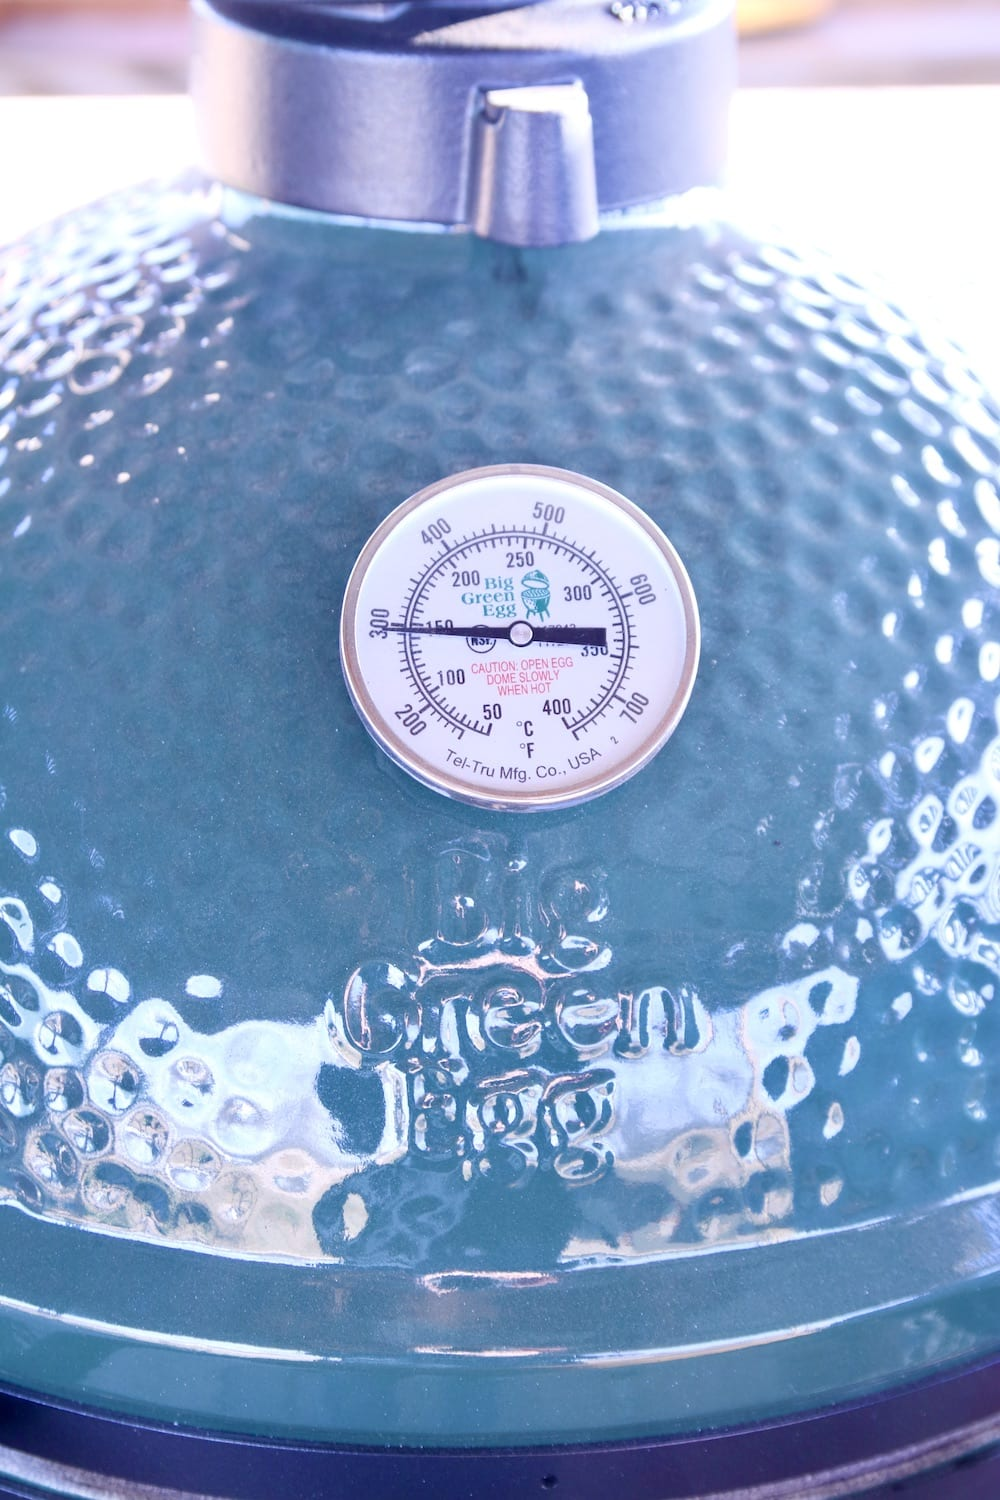 Big Green Egg Grill with 300° temperature